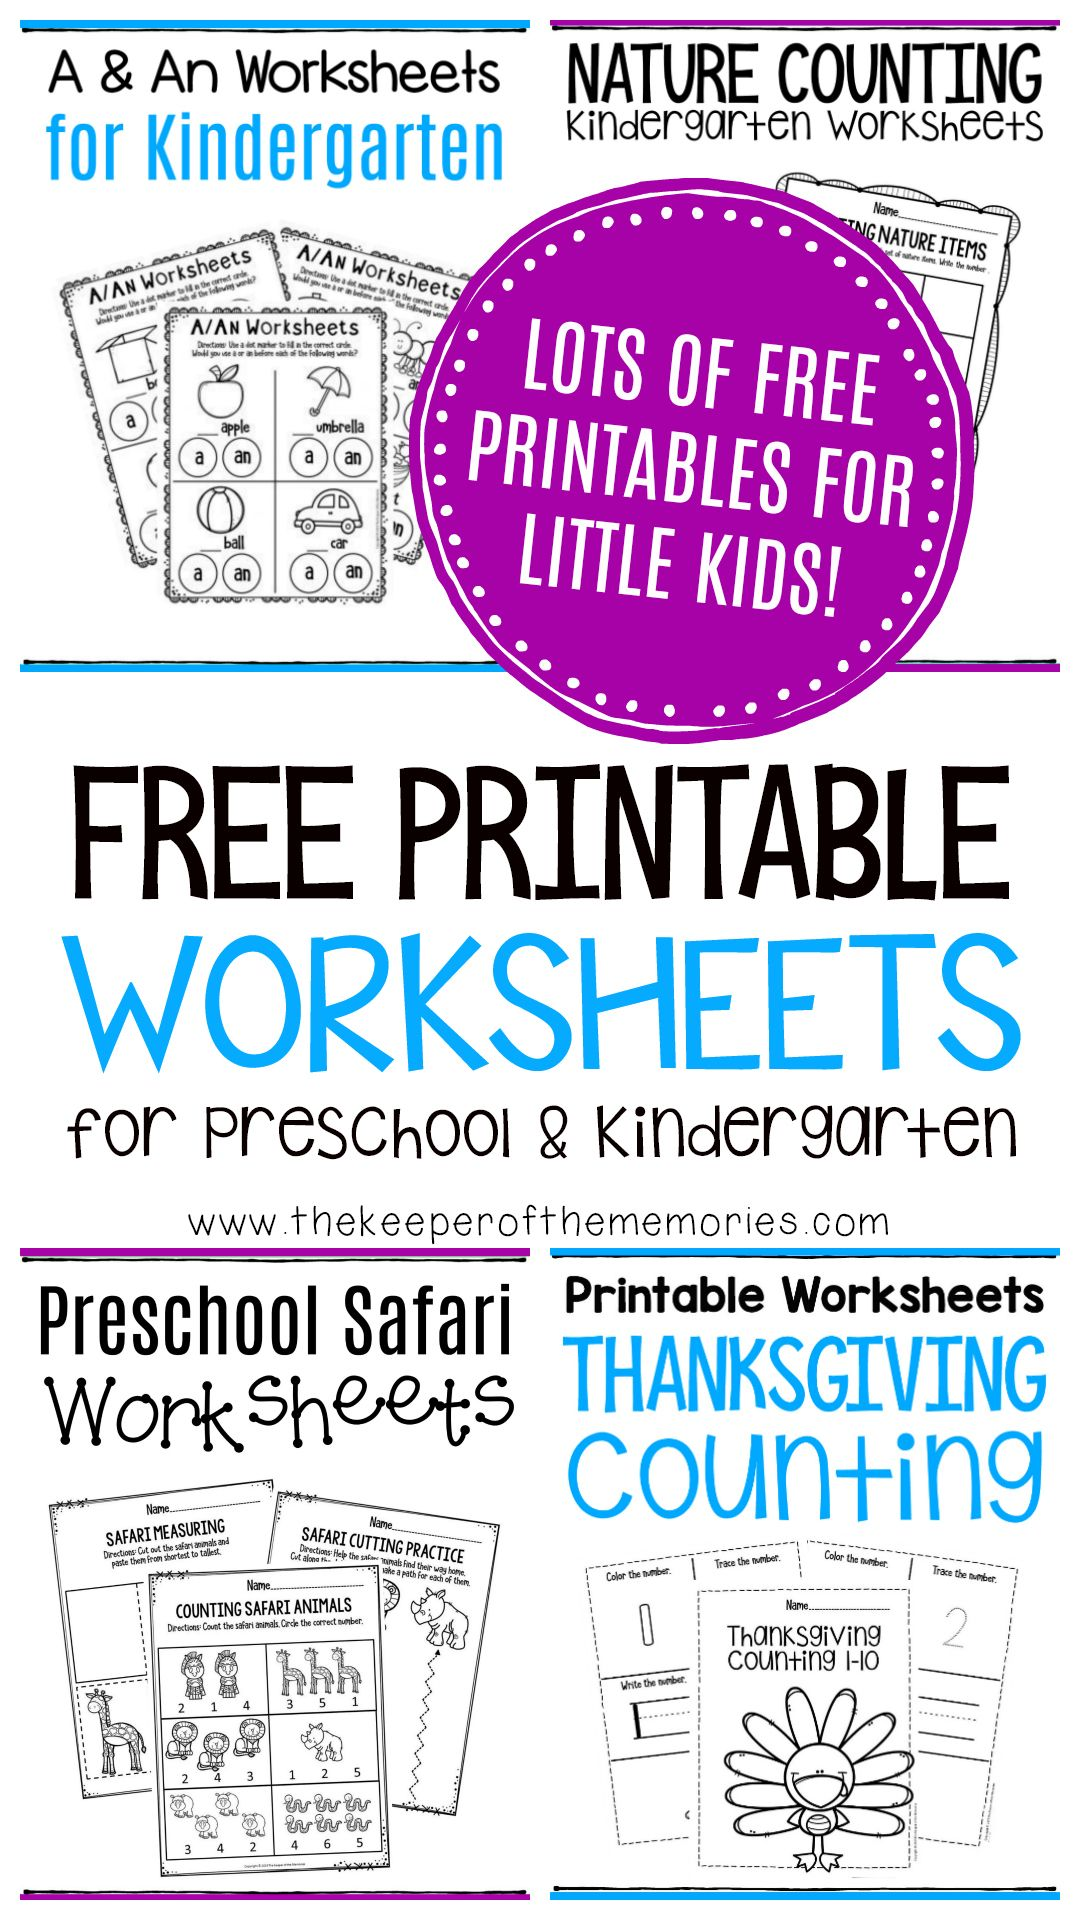 Free Printable Worksheets For Preschool Amp Kindergarten In